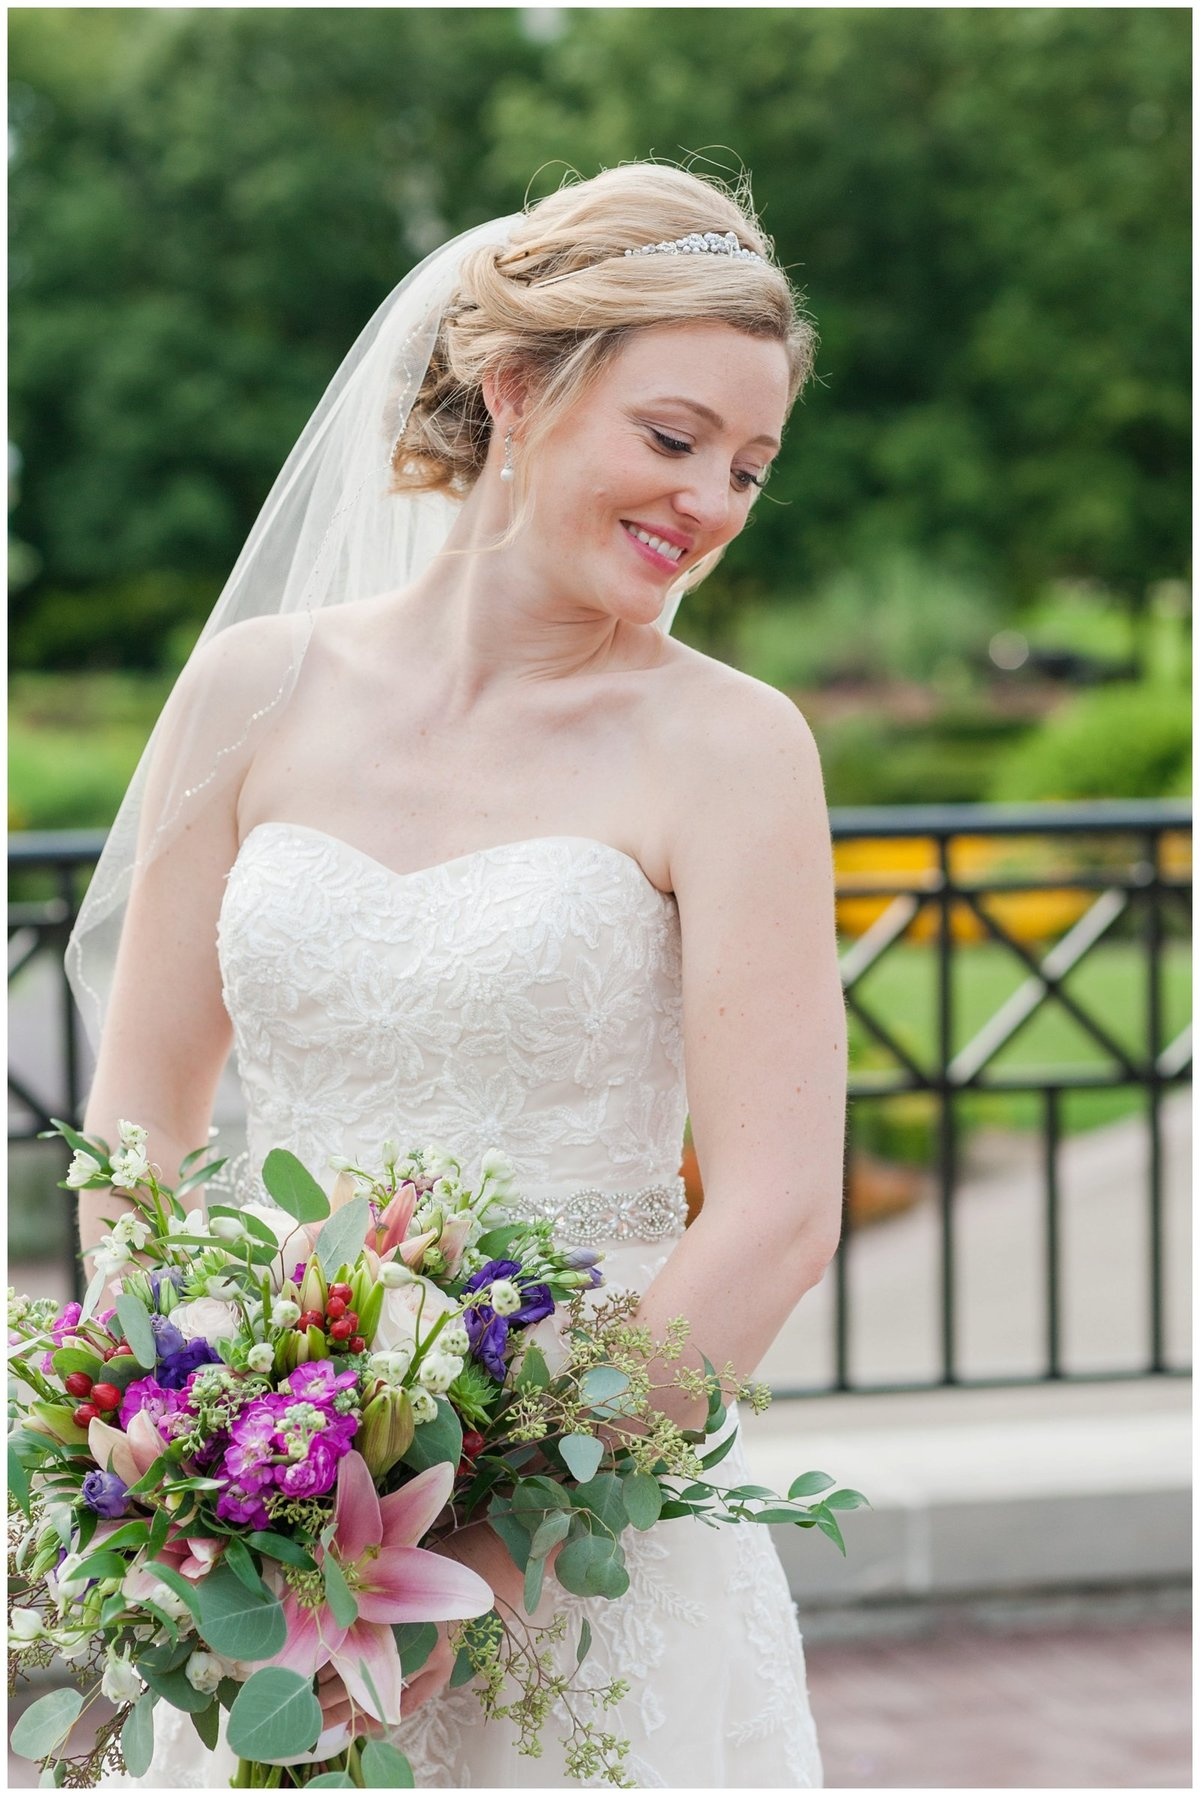 Franklin Park Conservatory Wedding The Palm House Bridal Garden Grove_0148